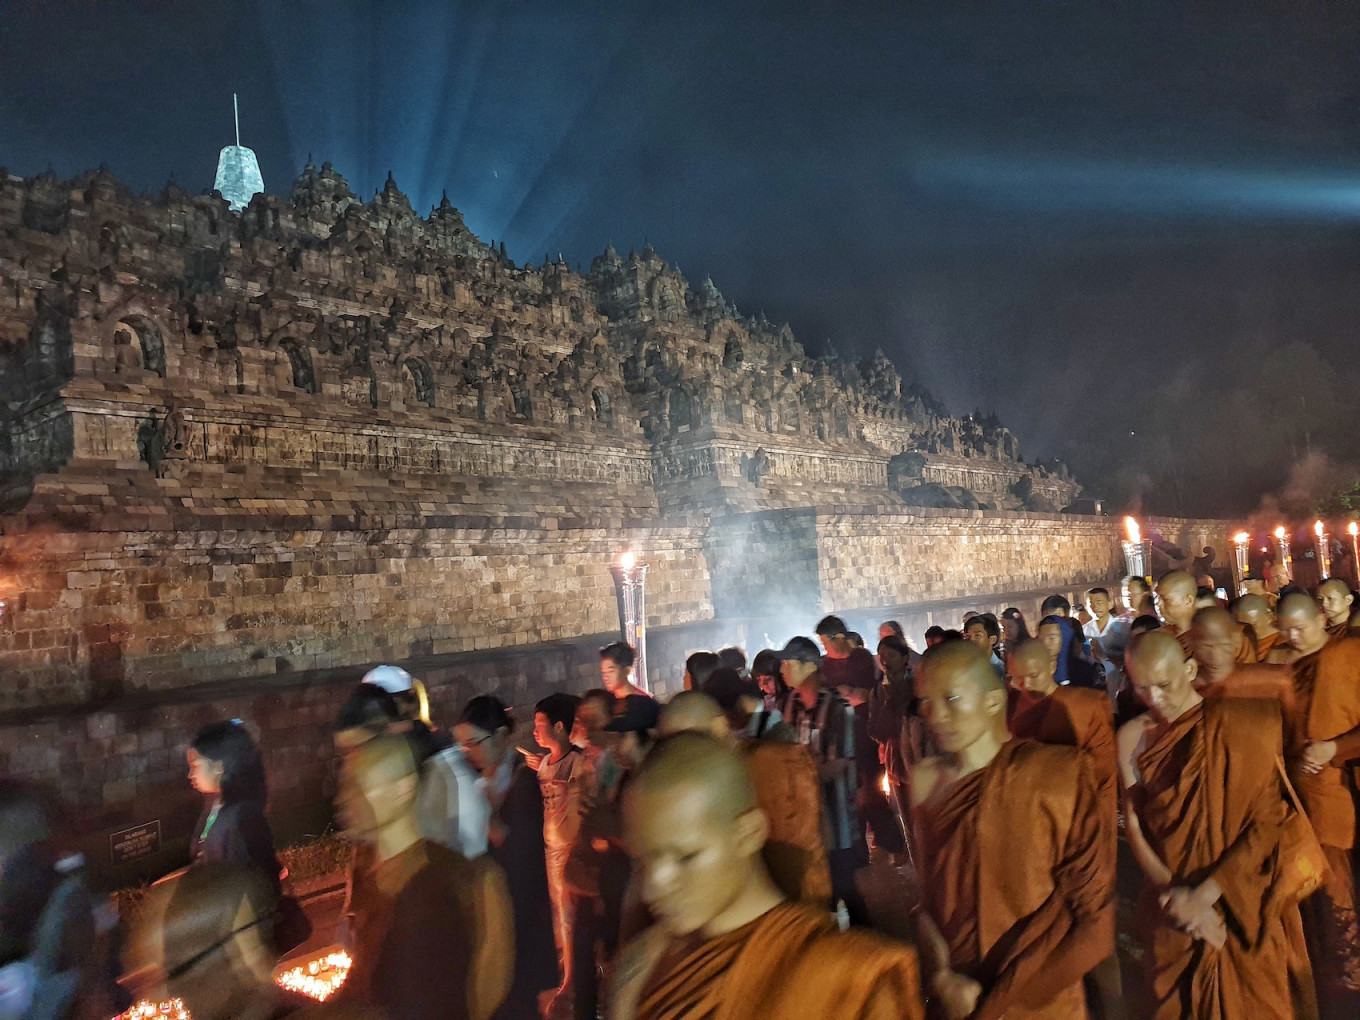 How Borobudur temple affects tourism in Magelang